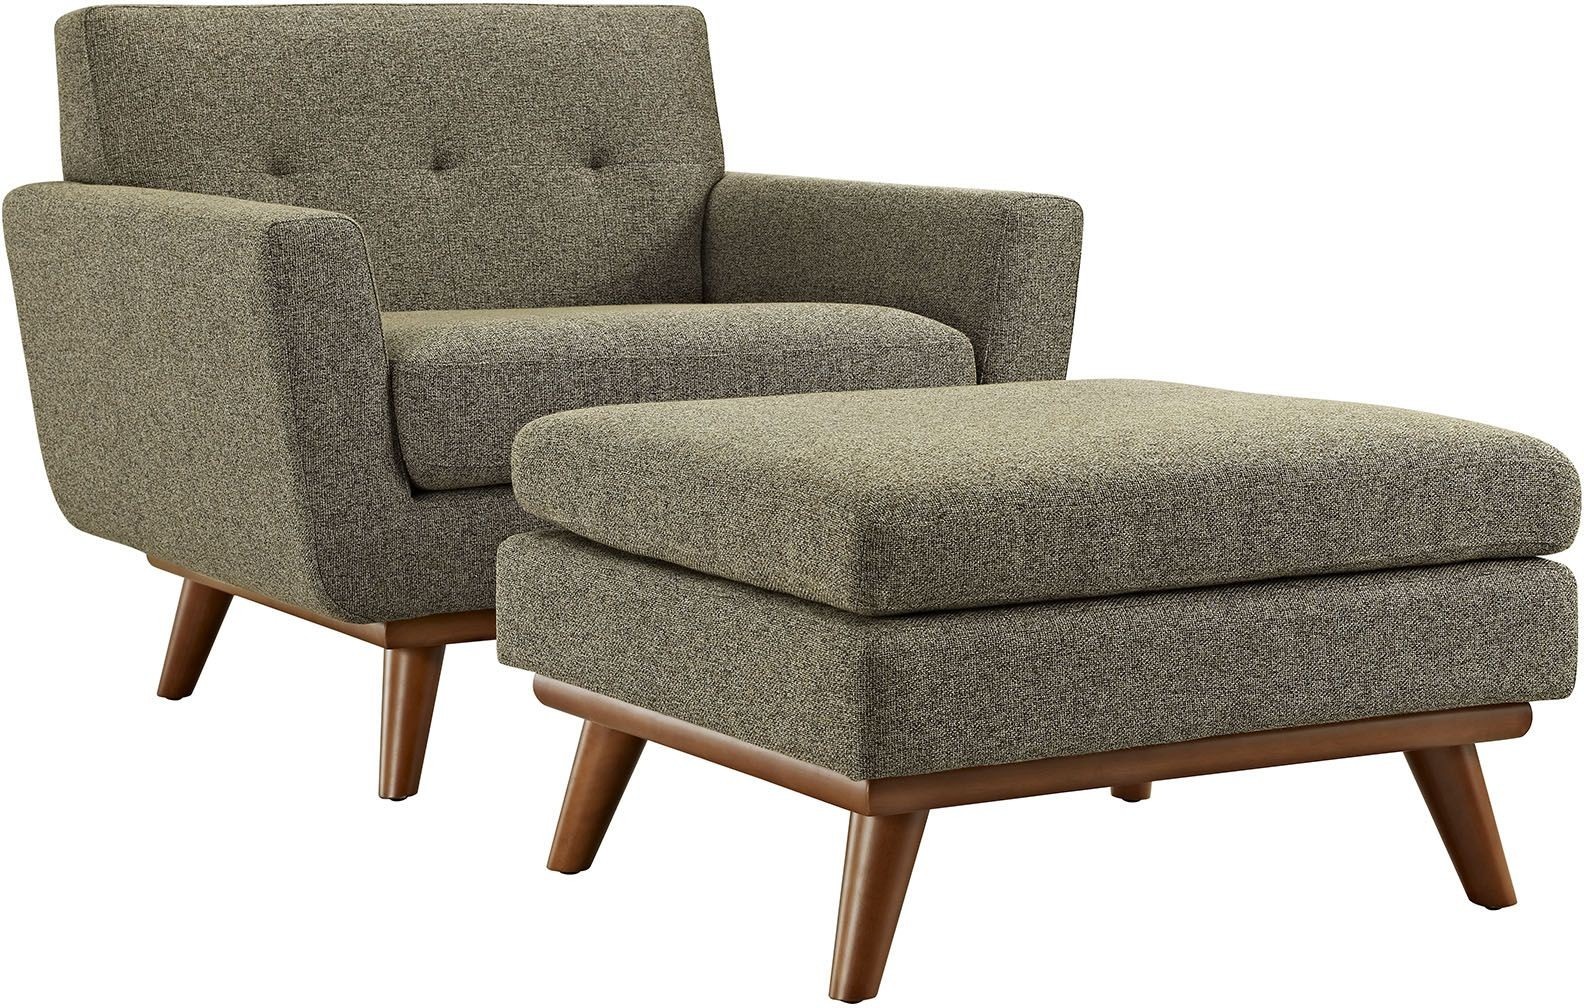 Engage oatmeal 2 piece armchair with ottoman from renegade for Armchair with ottoman